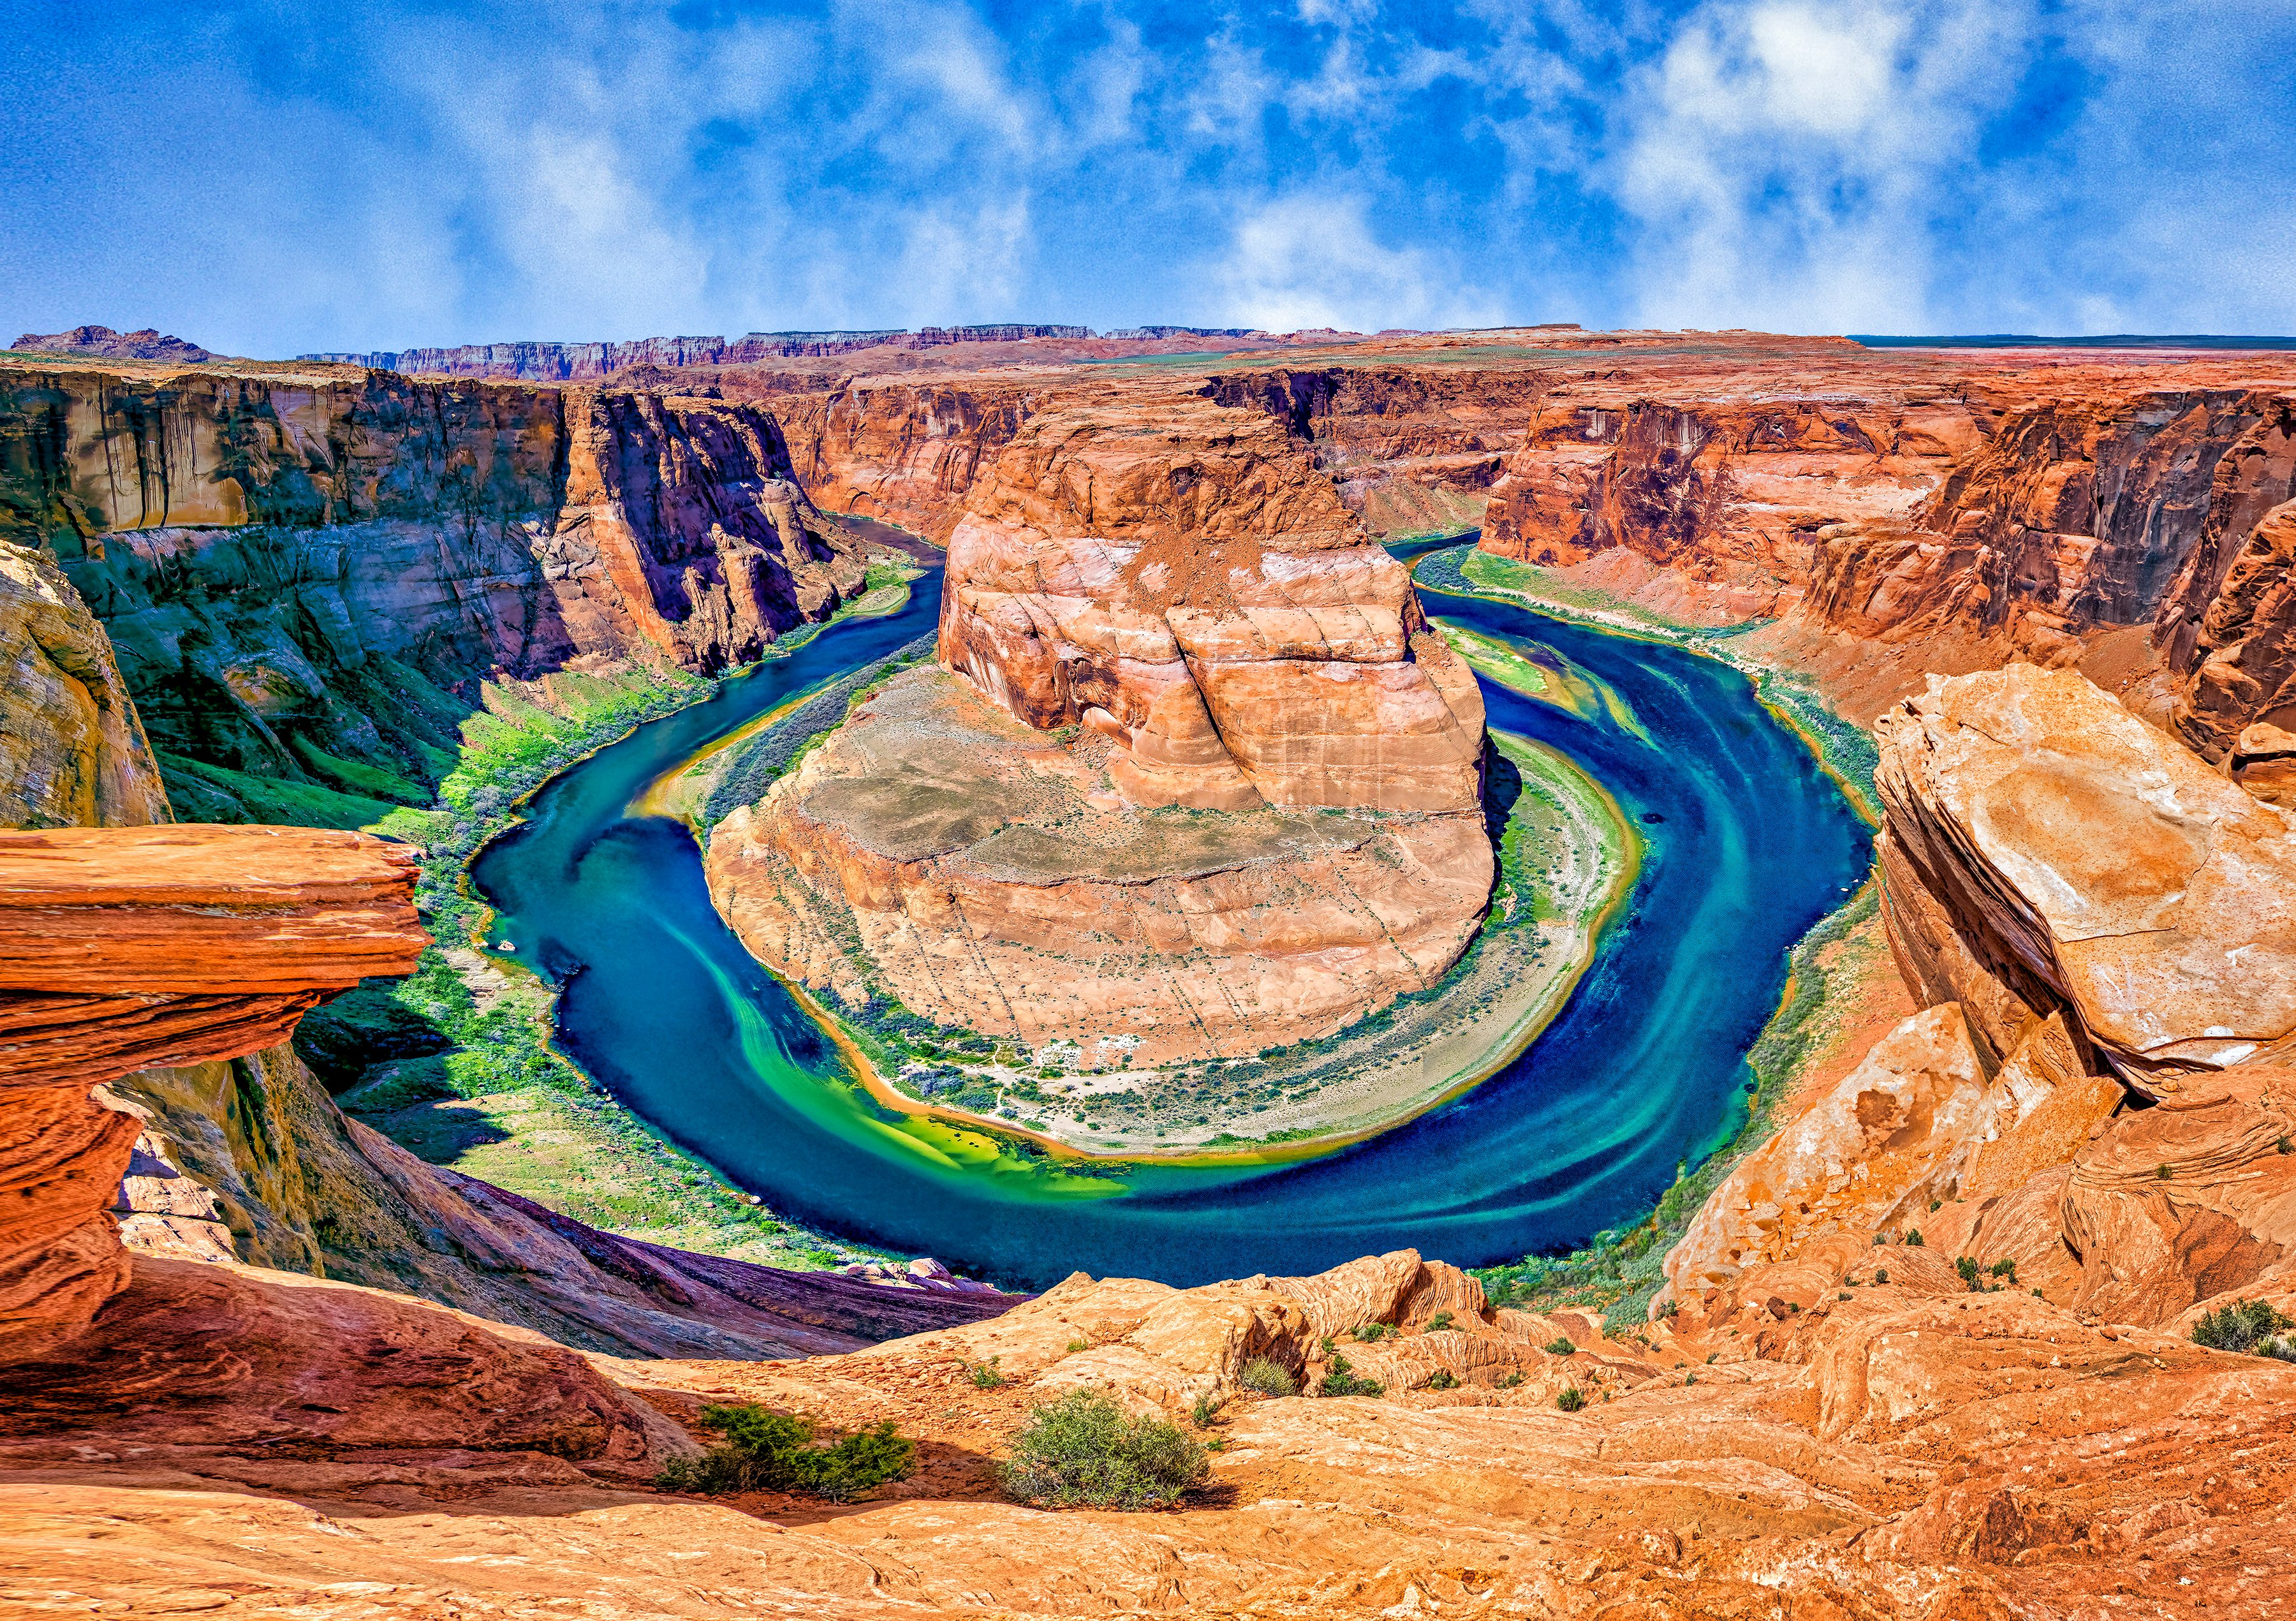 HORSESHOE BEND - A unique bend in the Colorado River near Page, AZ. It's a 1000 foot drop from the overlook down to the river.